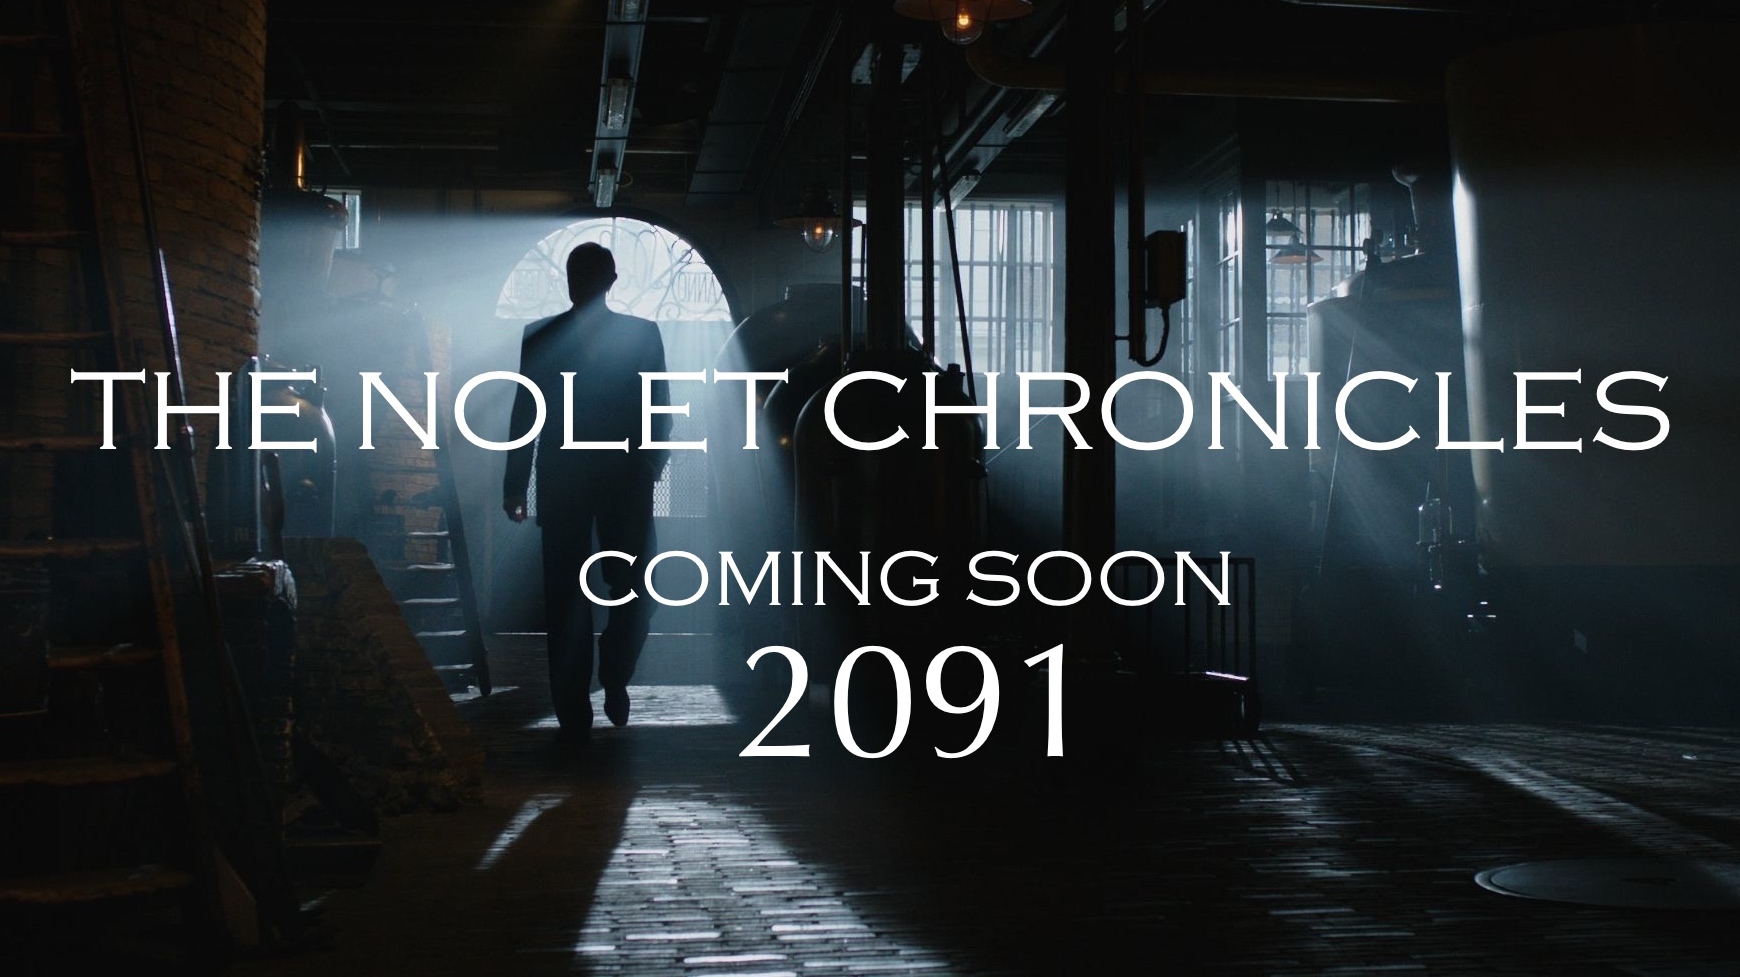 The Nolet Chronicles 2091 .